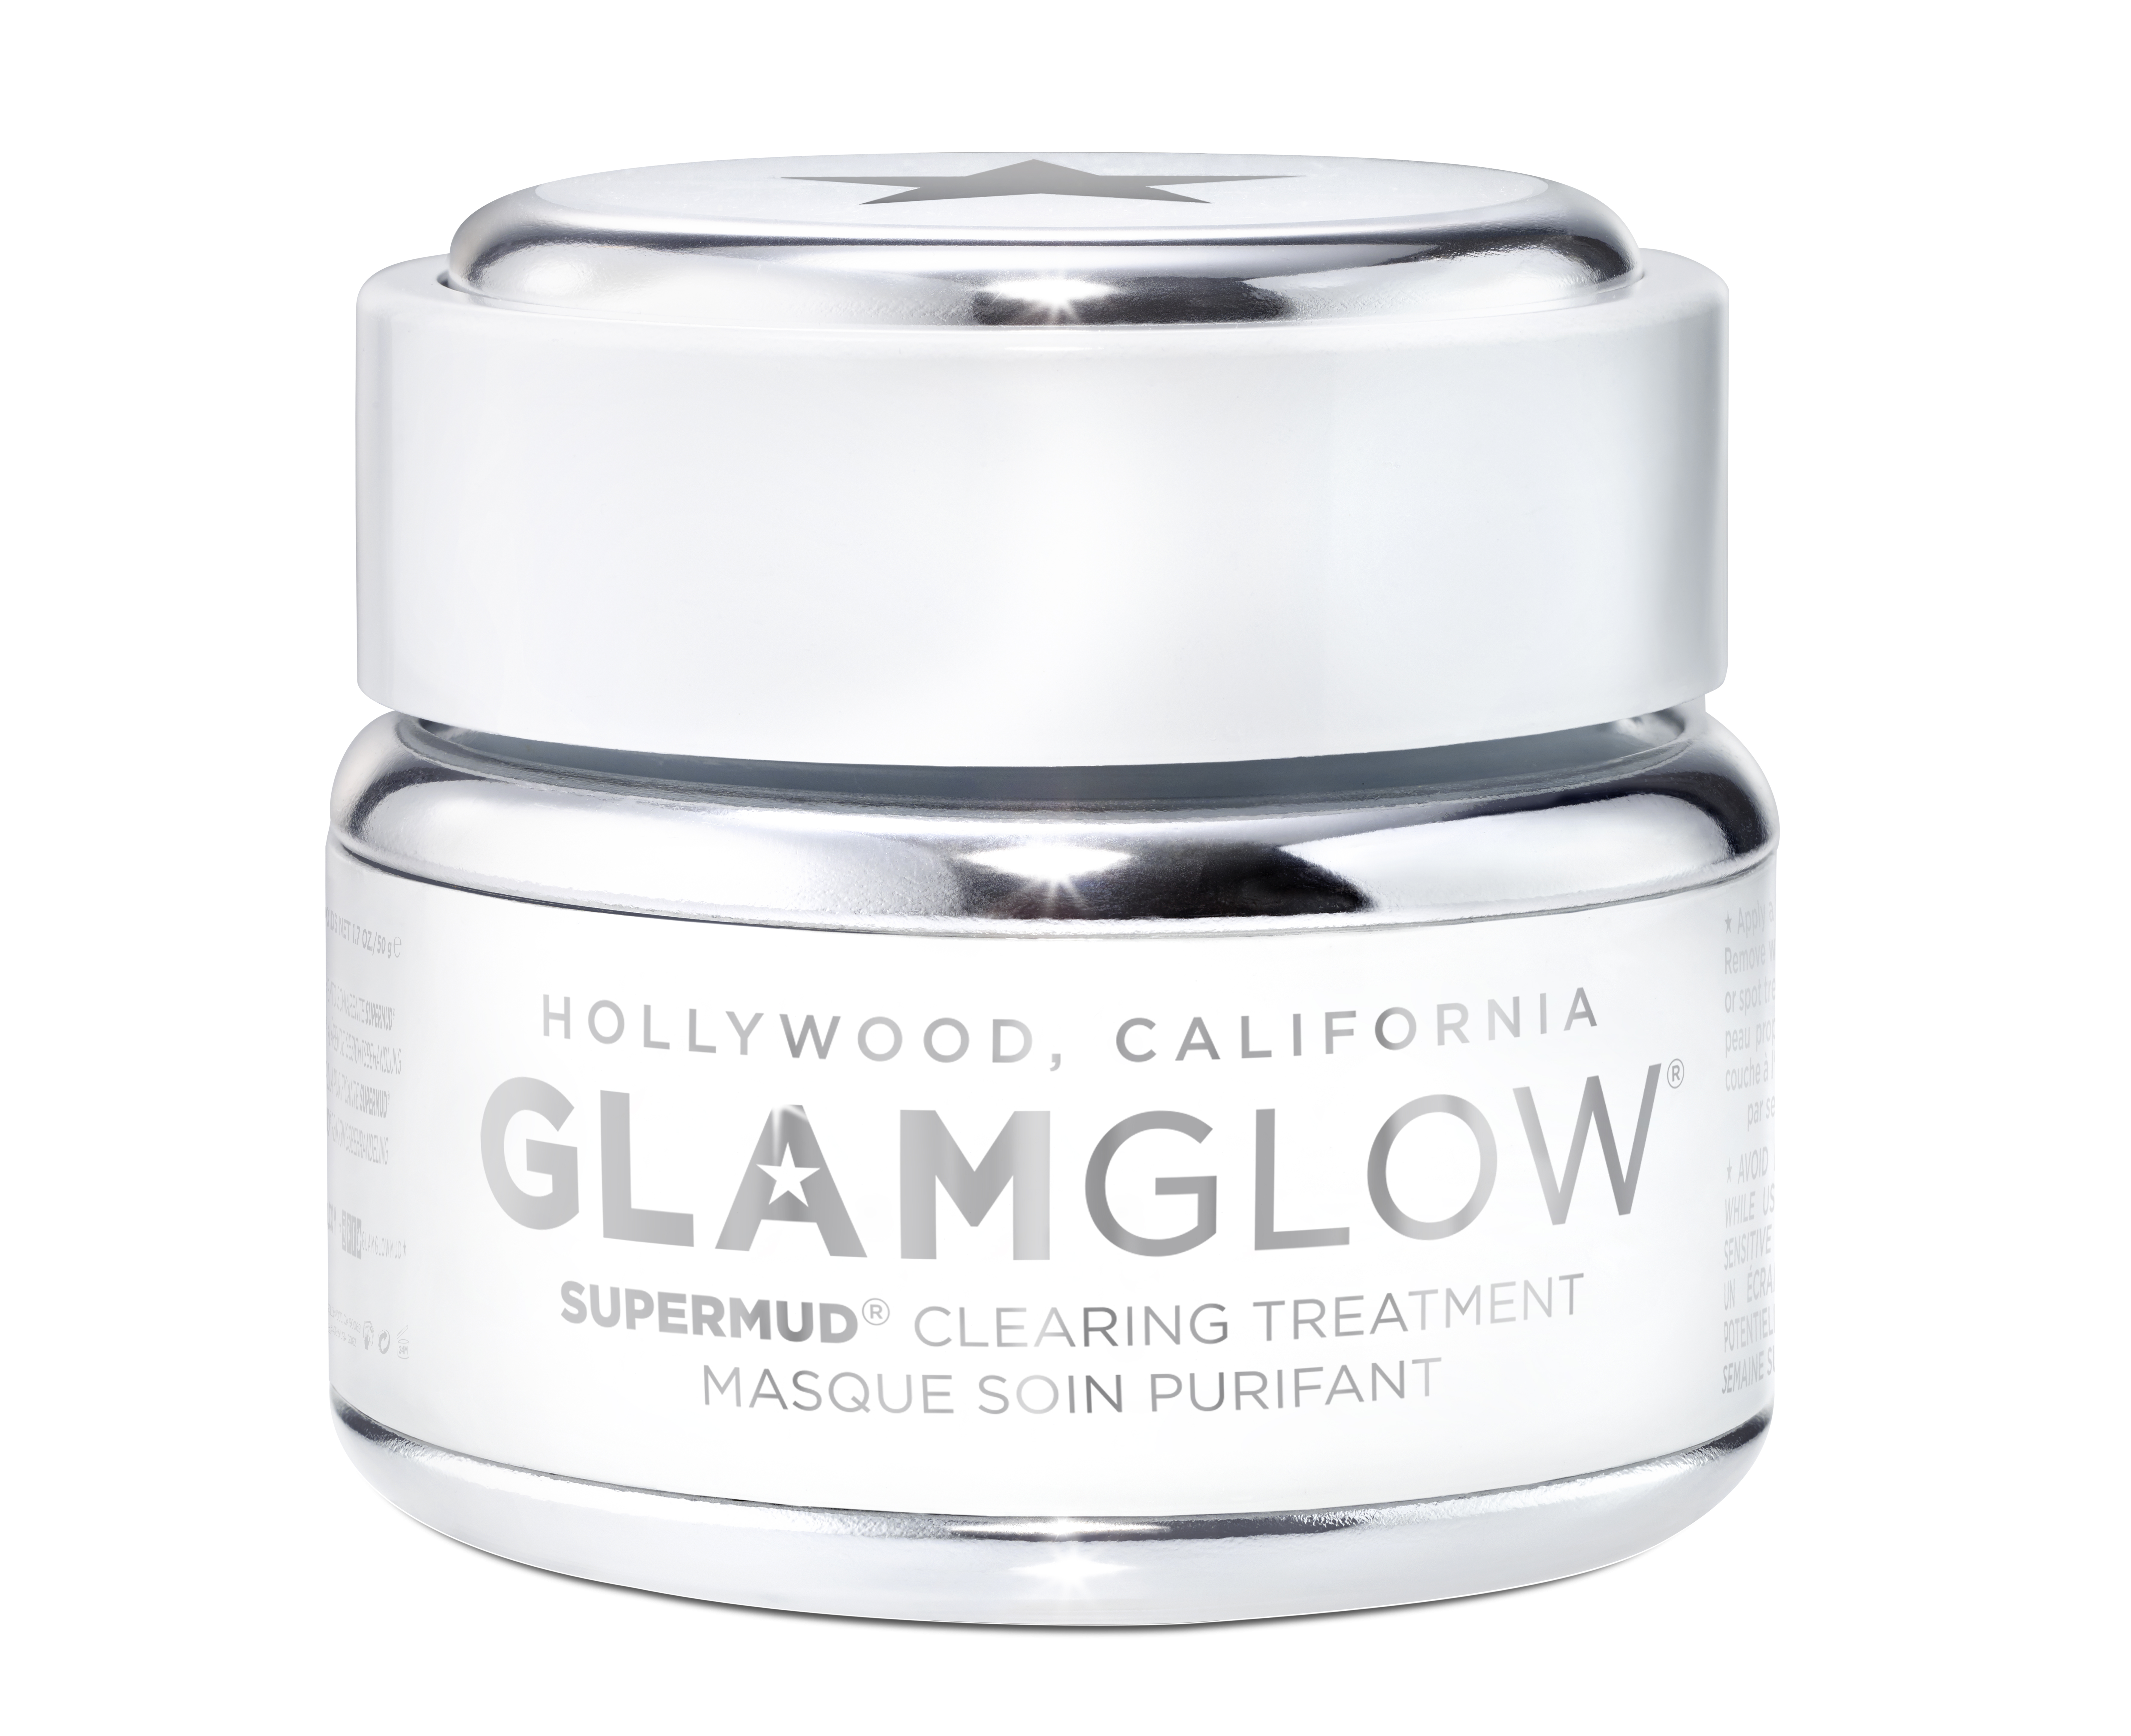 Glamglow super mud mask, how to detox your skin